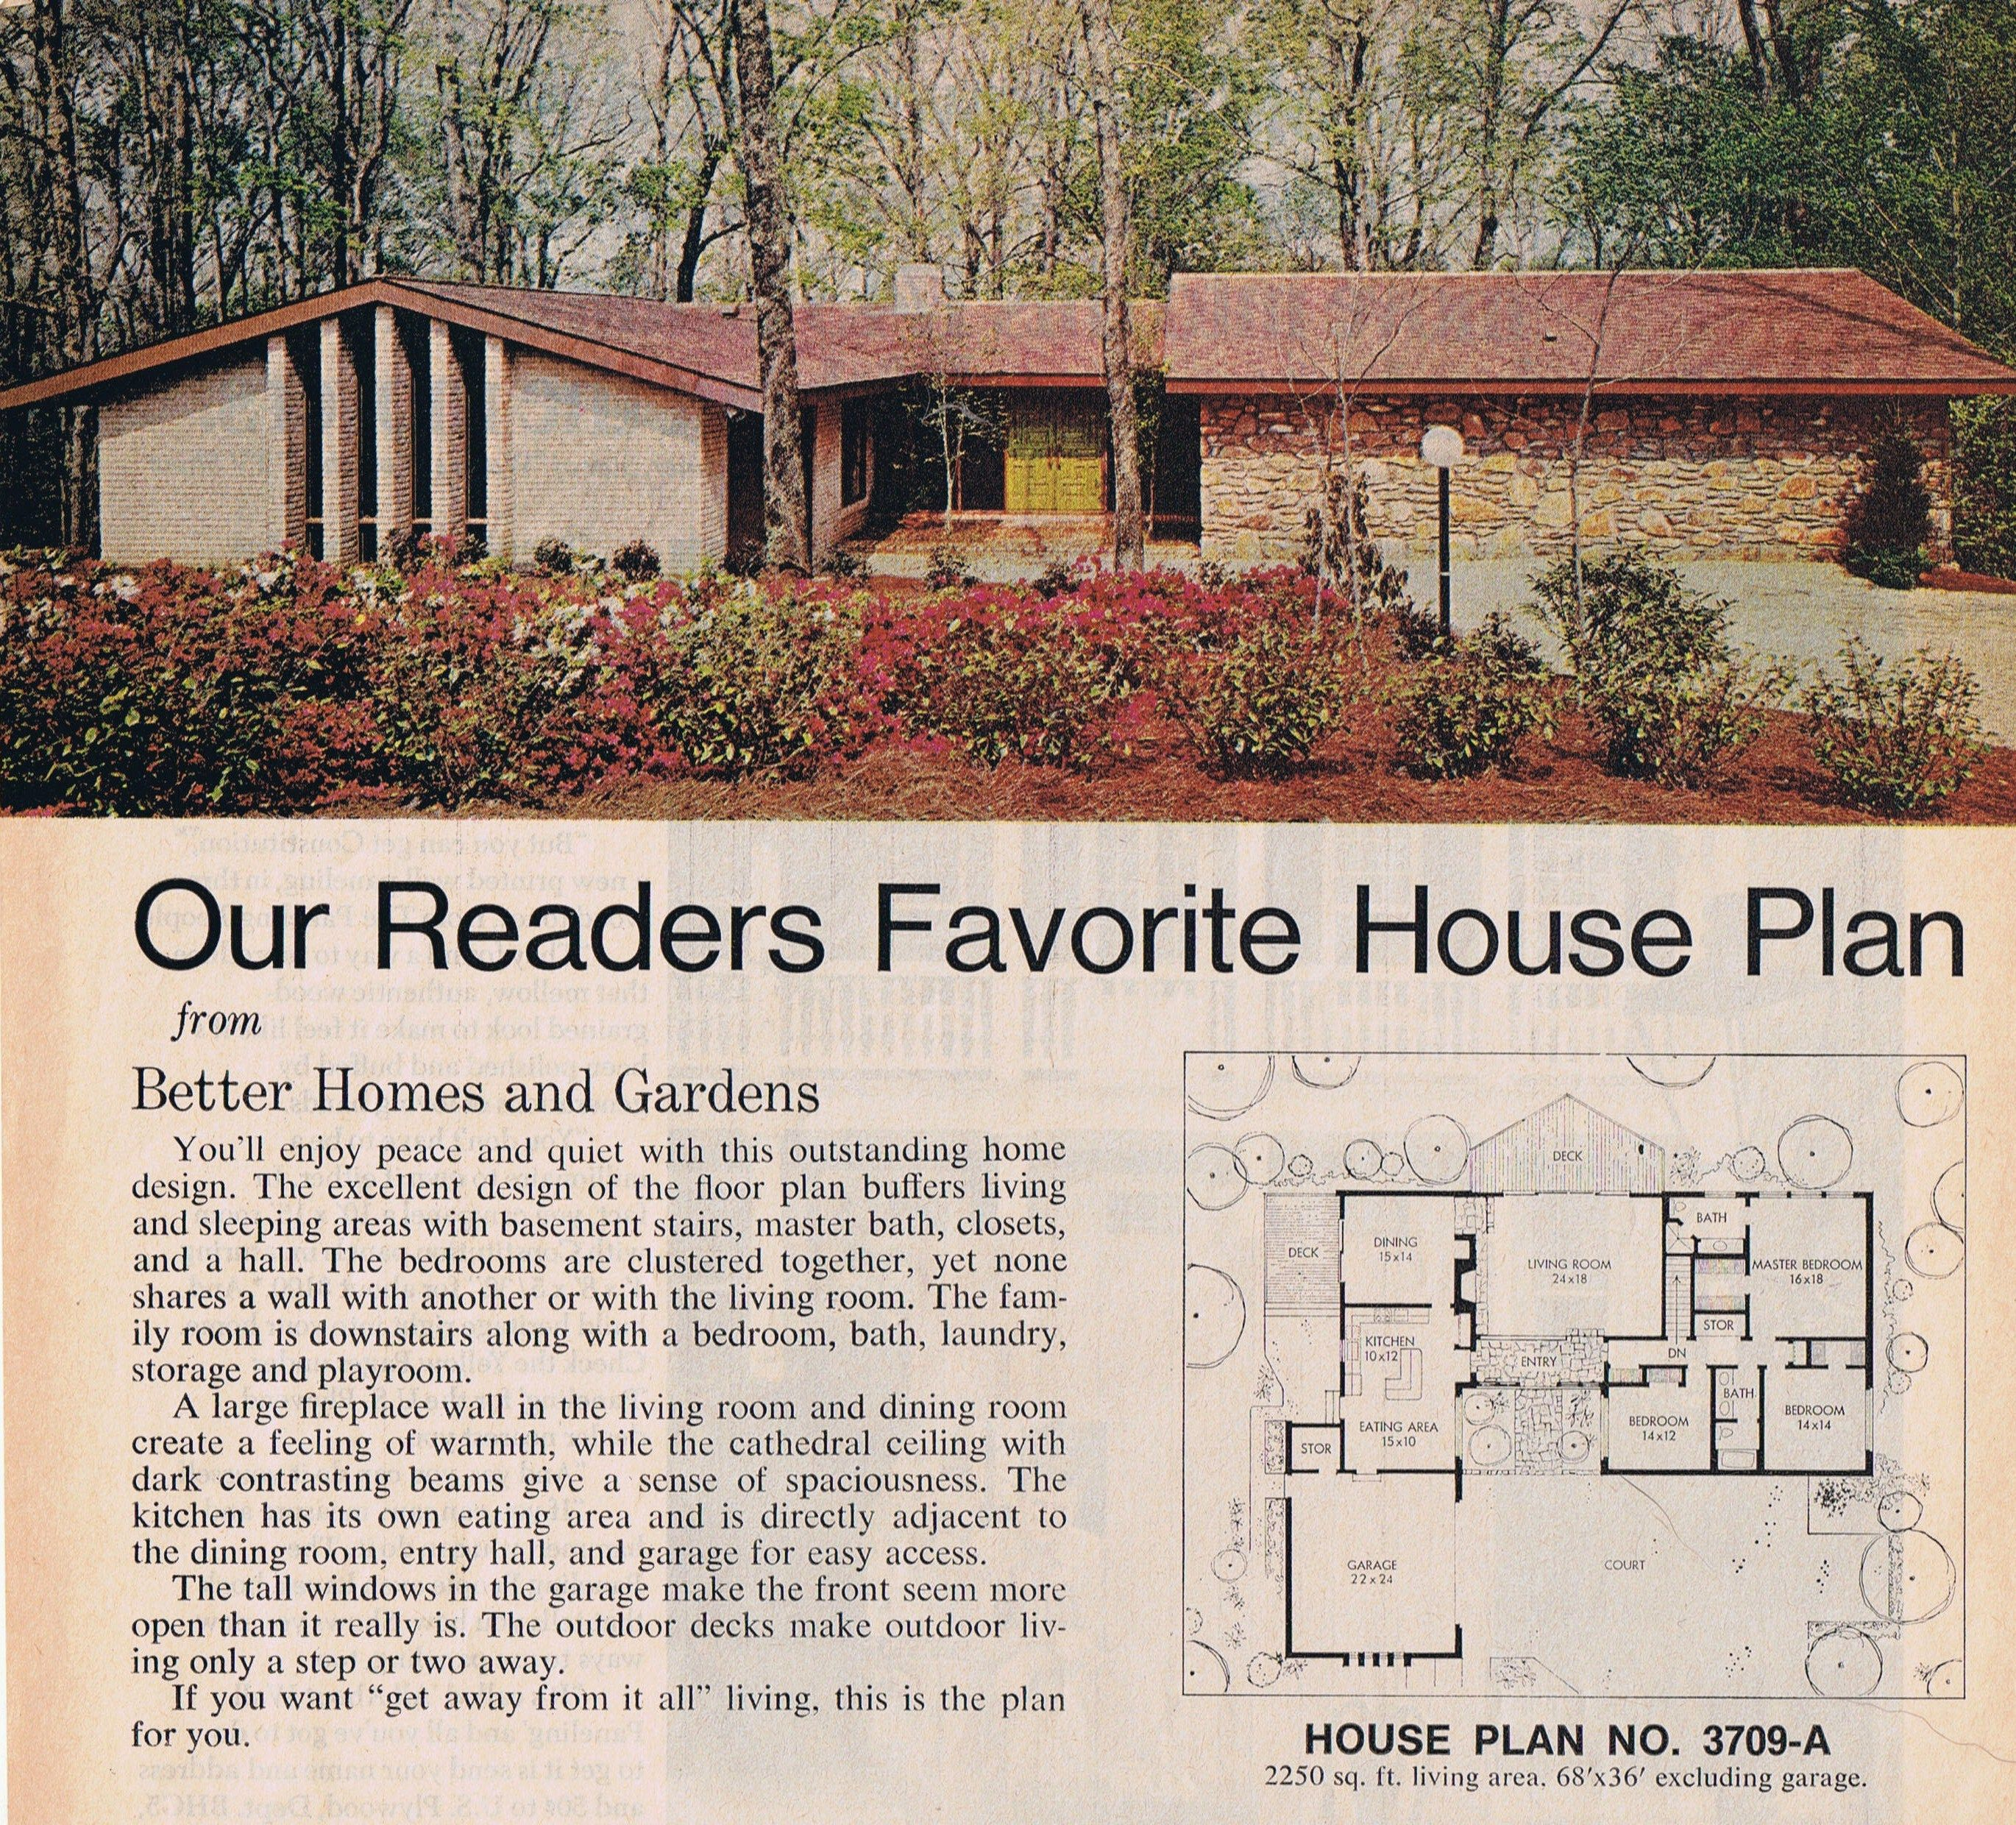 70 S Ranch House Bh G 1974 Better Homes And Gardens House Plans Mid Century Modern House Plans